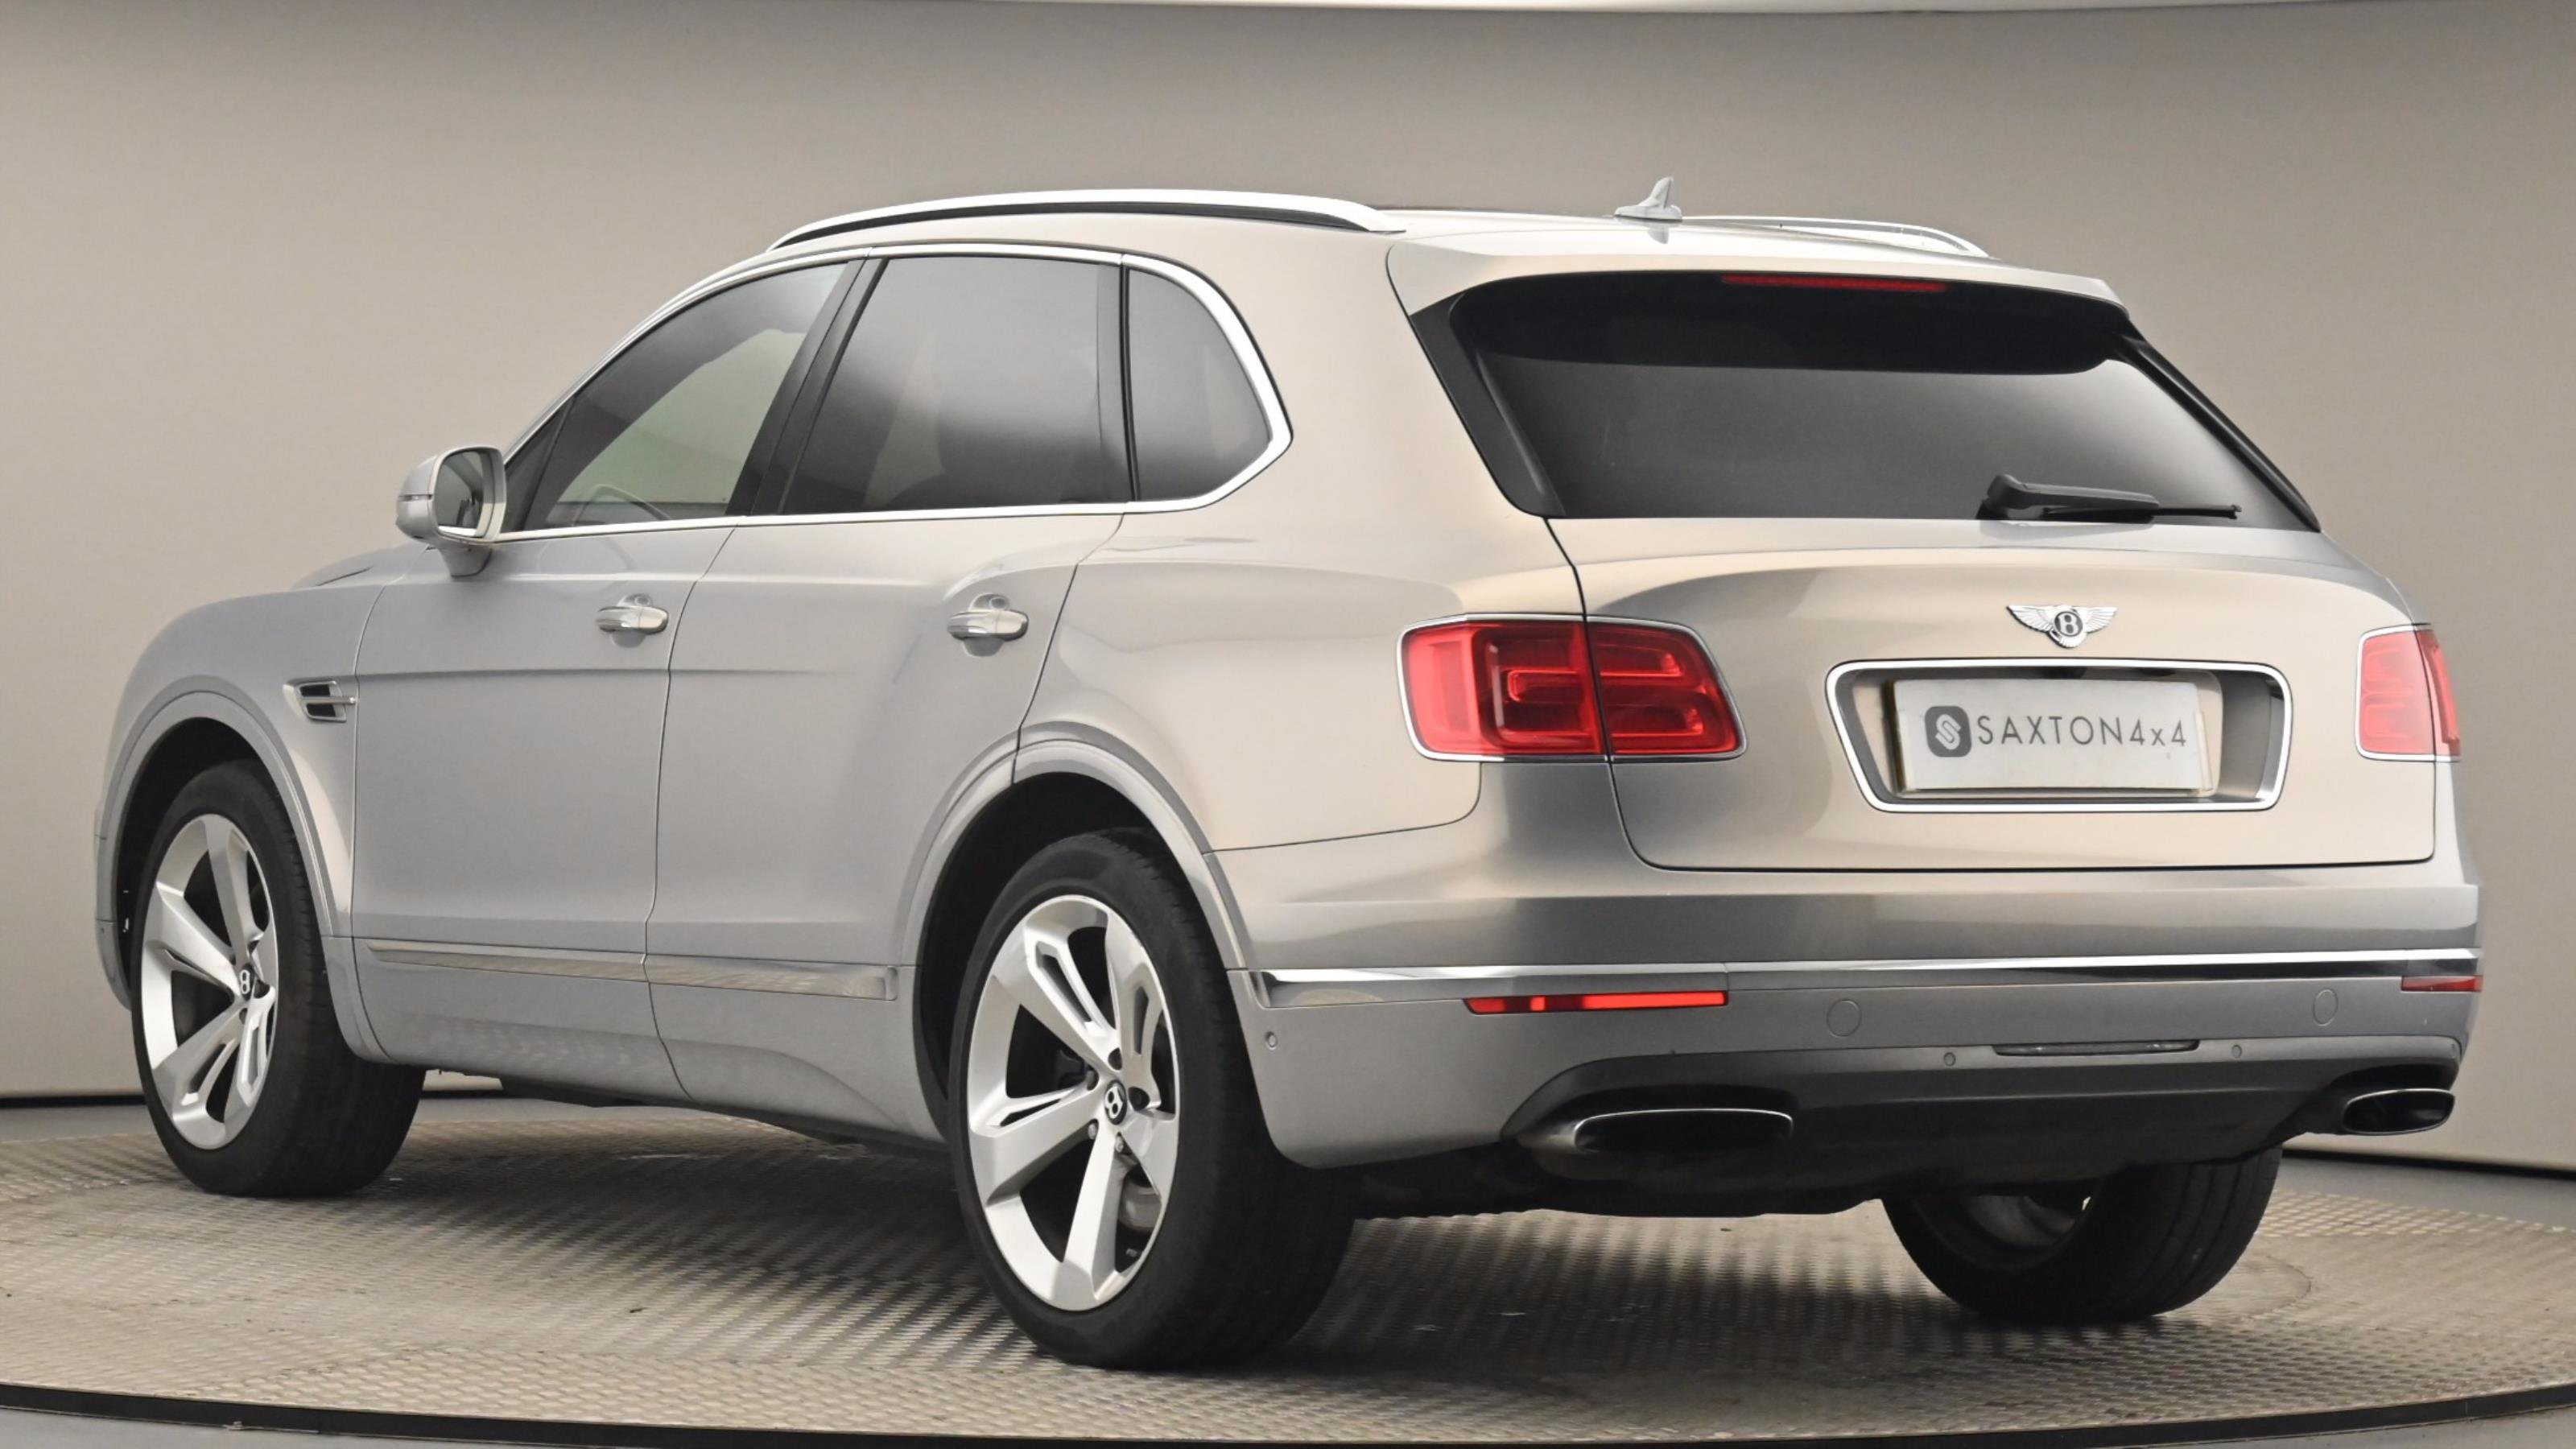 Used 2016 Bentley BENTAYGA 6.0 W12 5dr Auto GREY at Saxton4x4